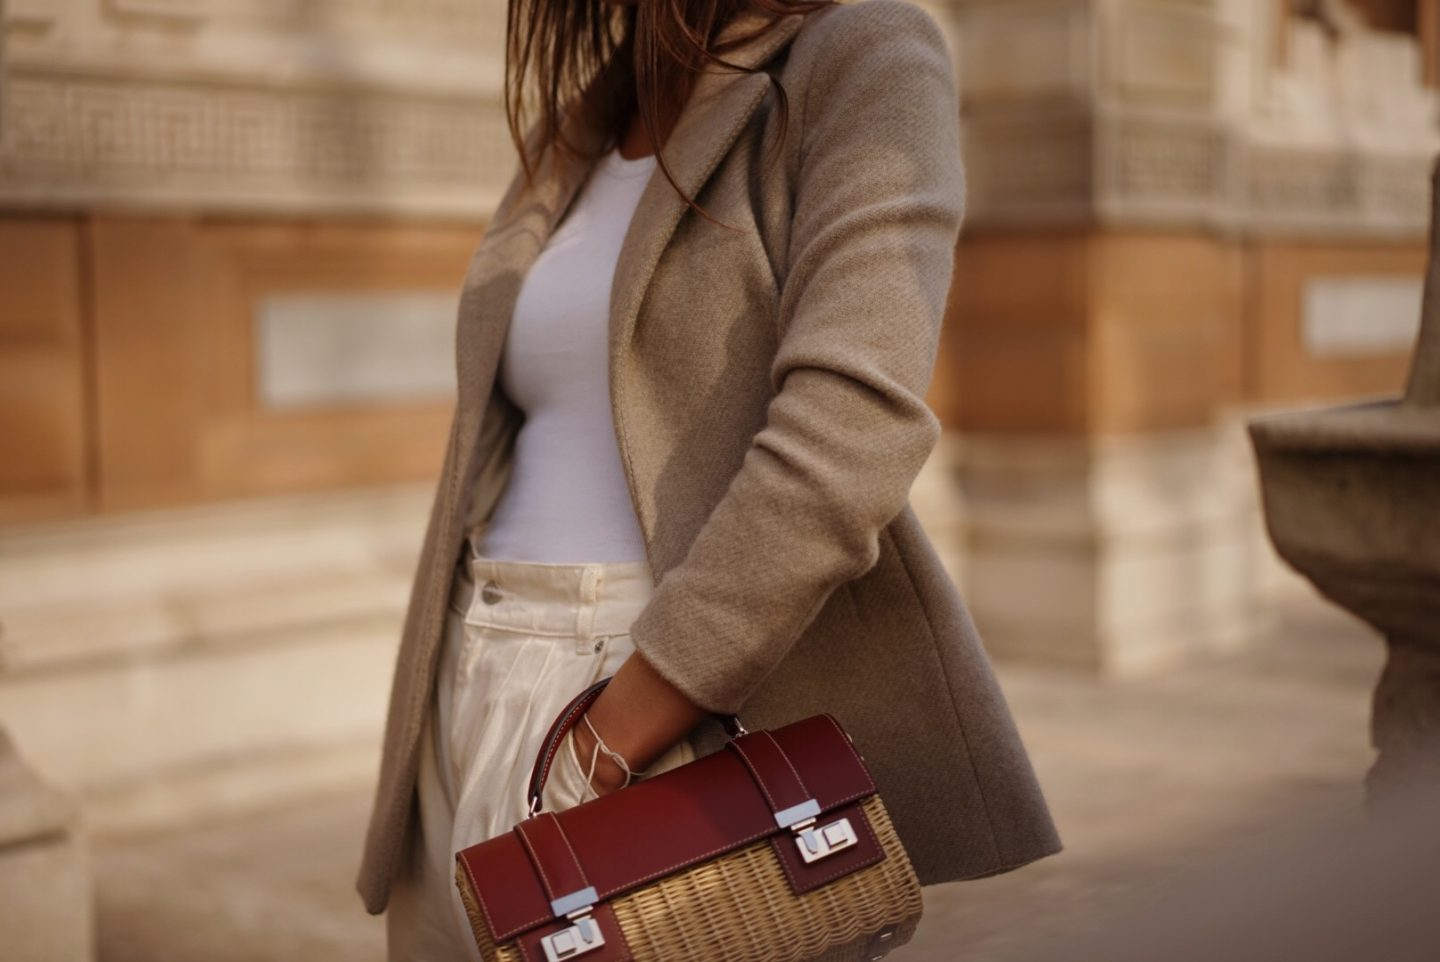 New Season Style Beige Jacket Moynat Cabotin Bag London Fashion Week